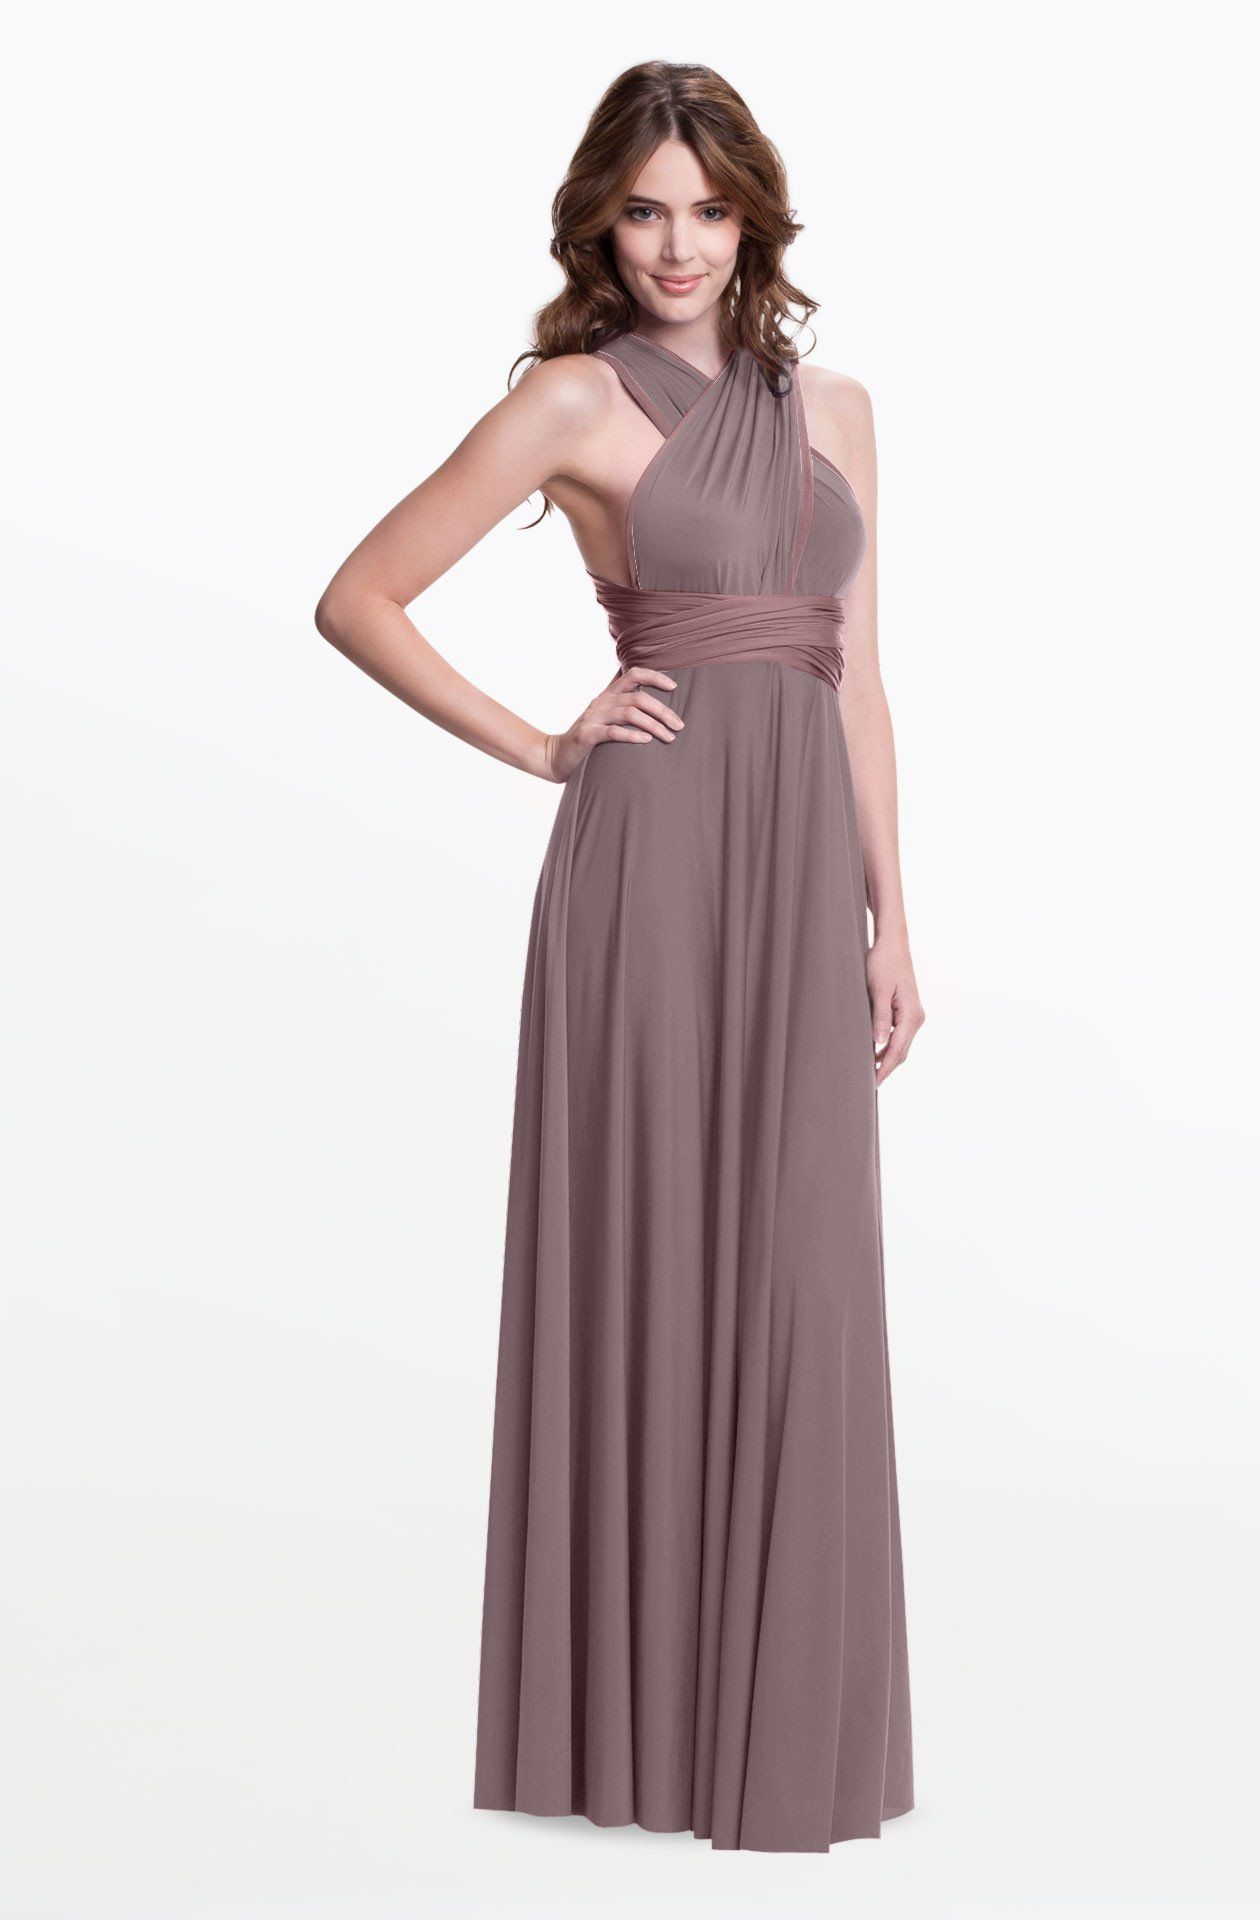 Reversible sakura maxi convertible dress gowns and weddings this reversible convertible dress can be styled in over 100 variations its a great option ombrellifo Image collections